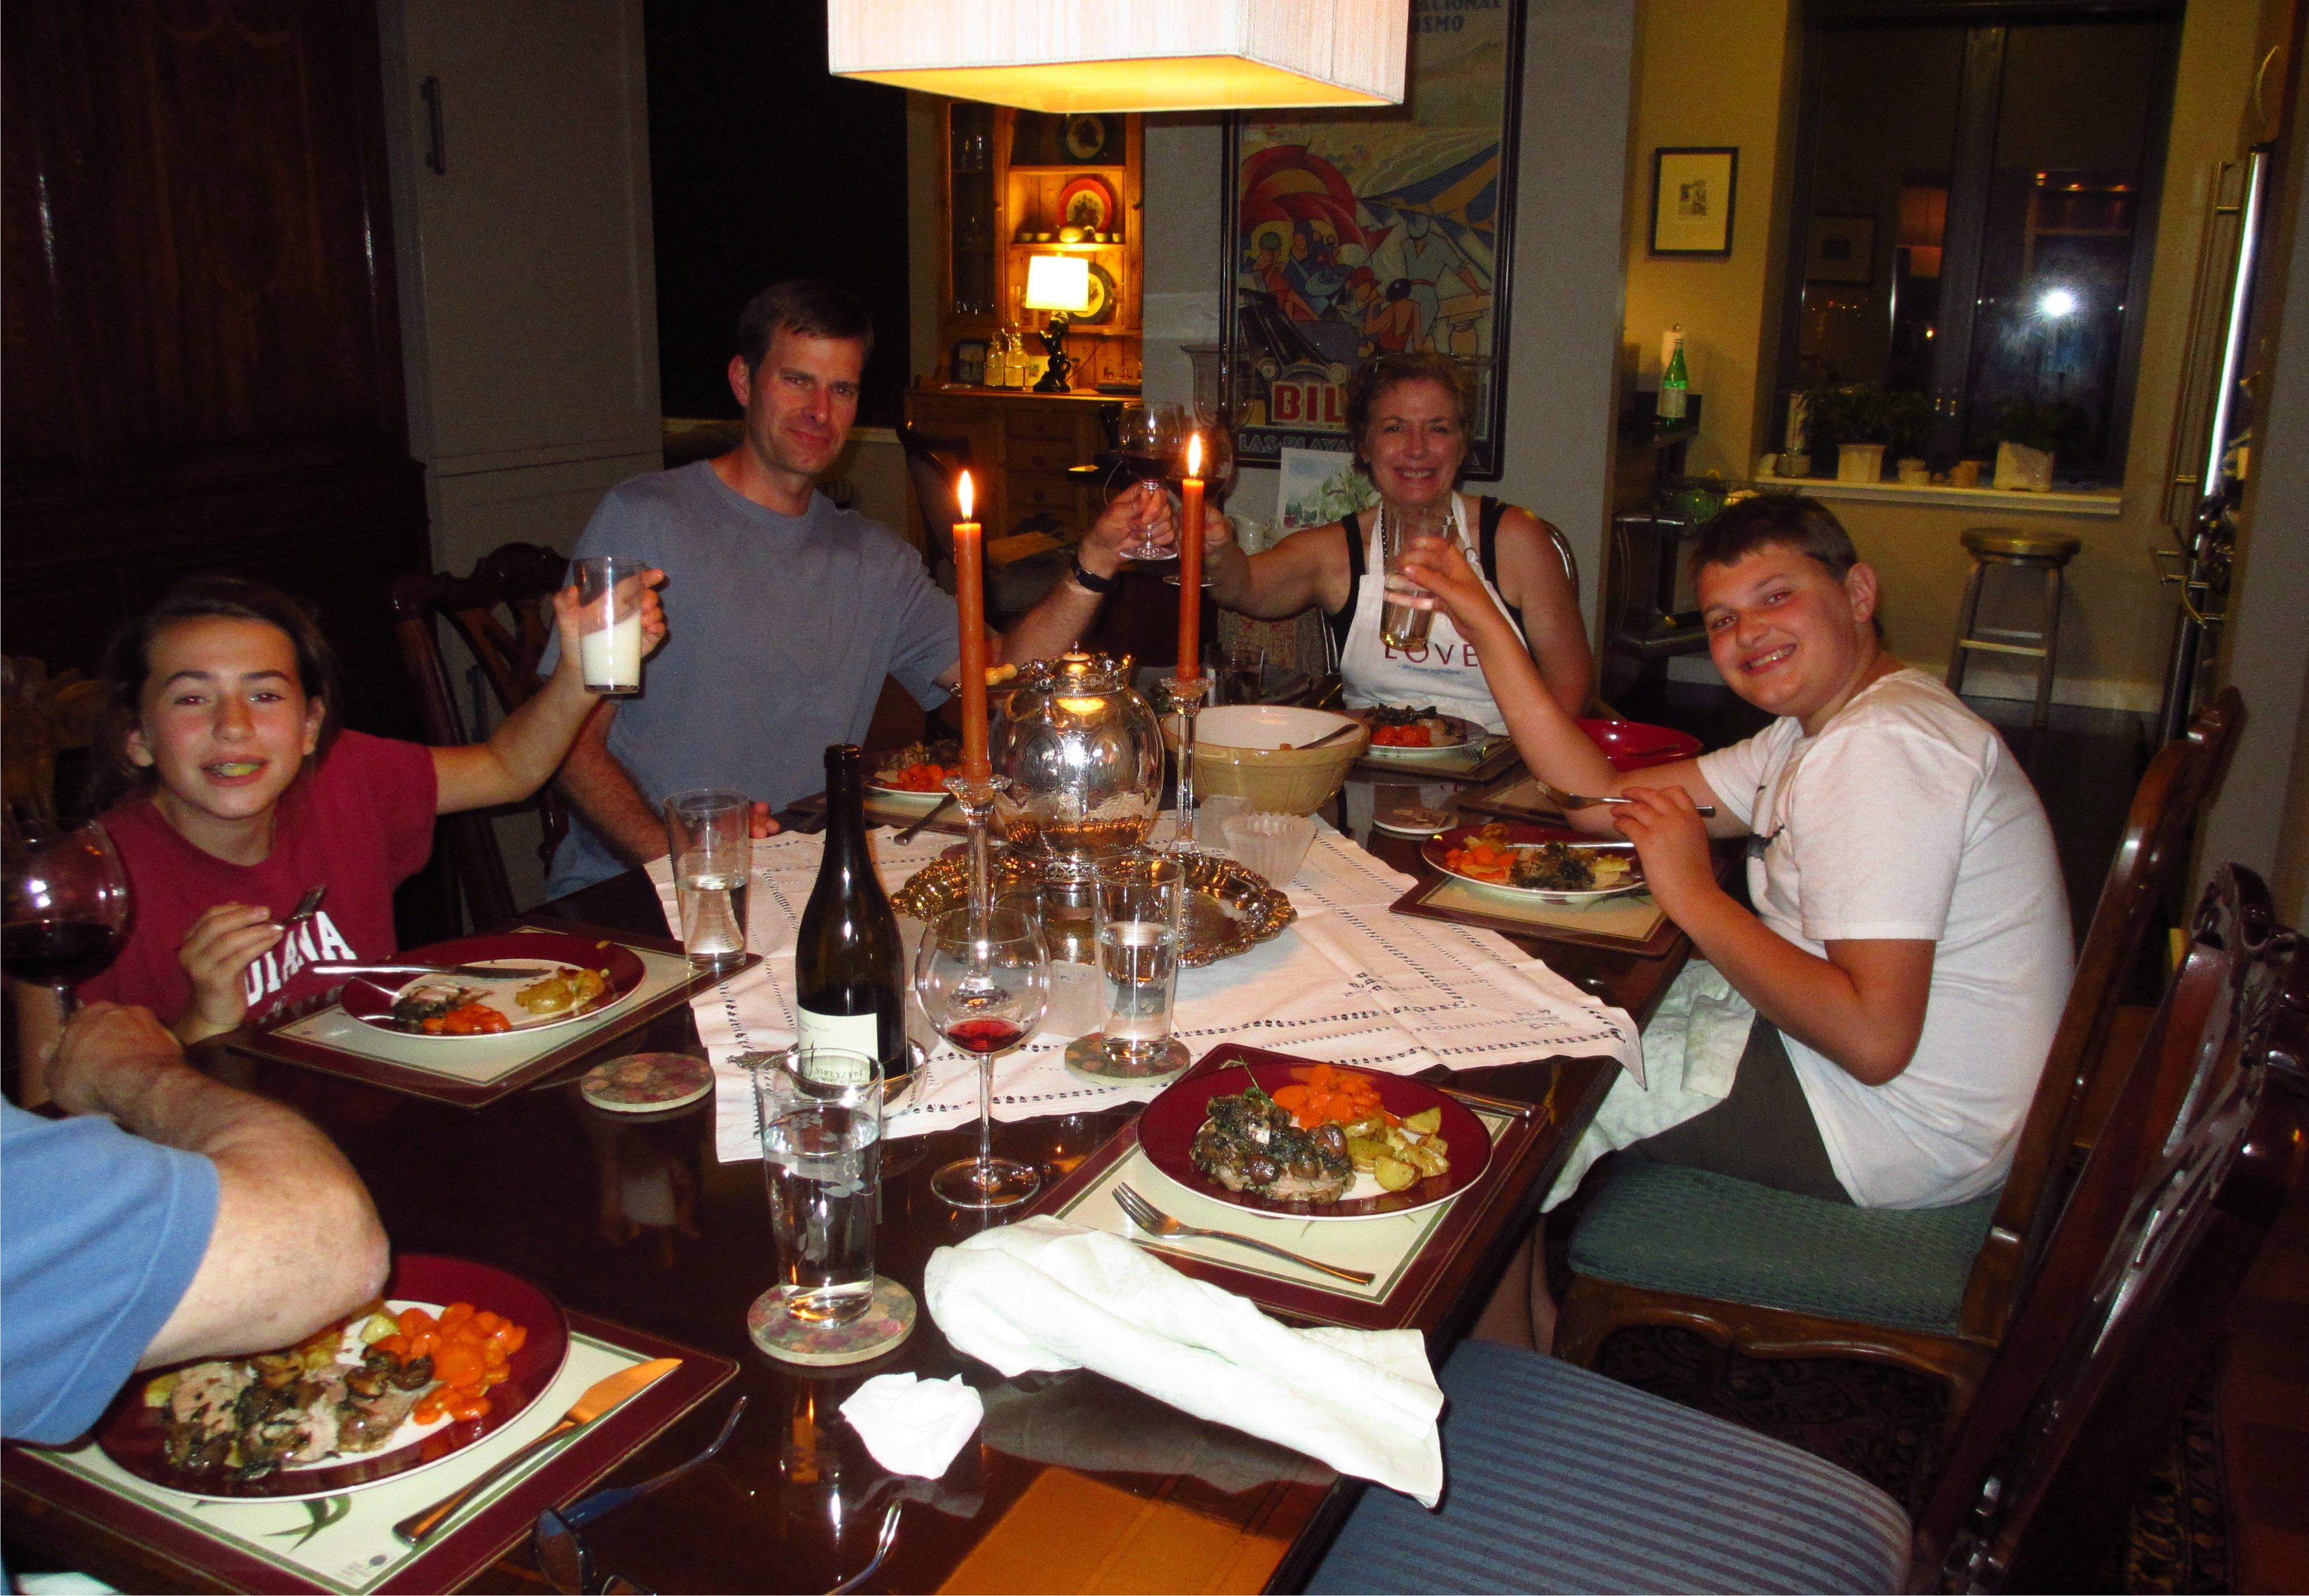 House guests  with a family toasting at the dinner table.